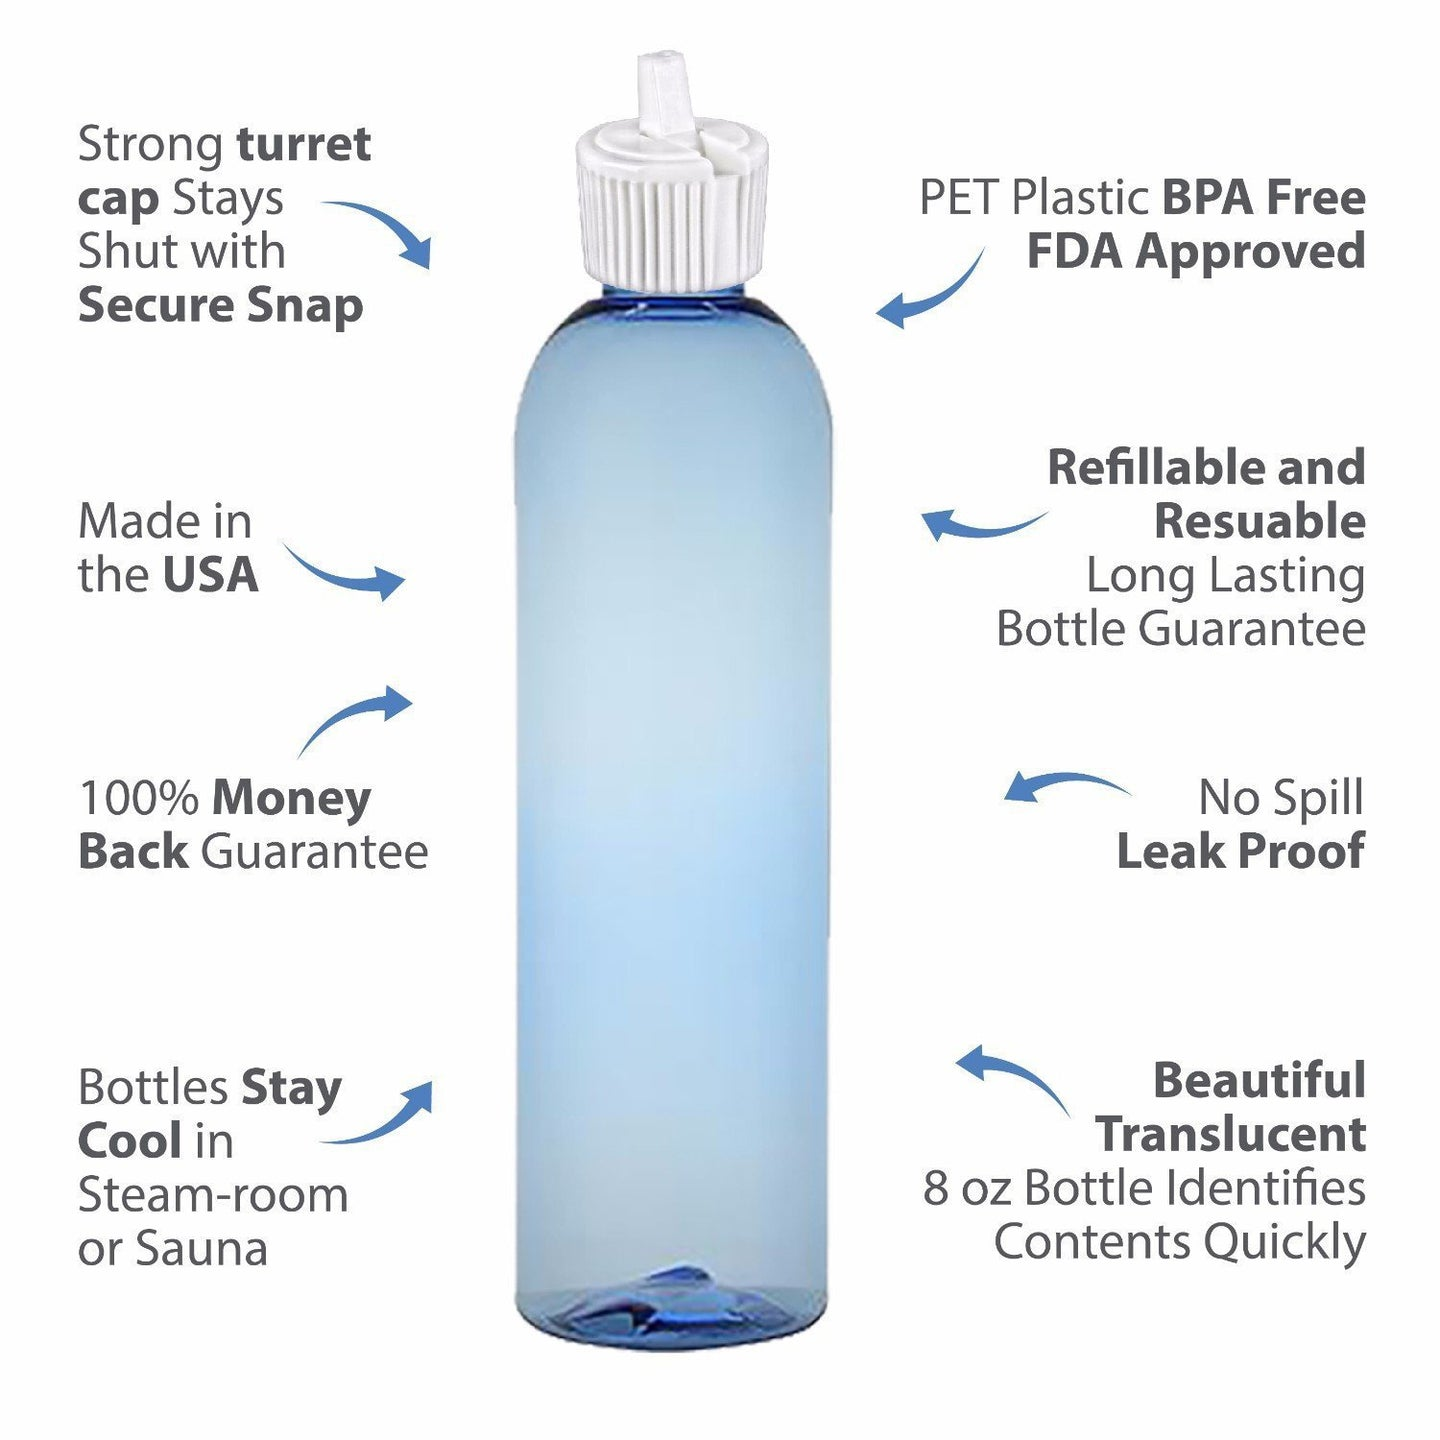 MoYo Natural Labs Turret Spout 8 oz Empty Liquid Bottle with Adjustable Dispenser (Pack of 6, Light Blue)